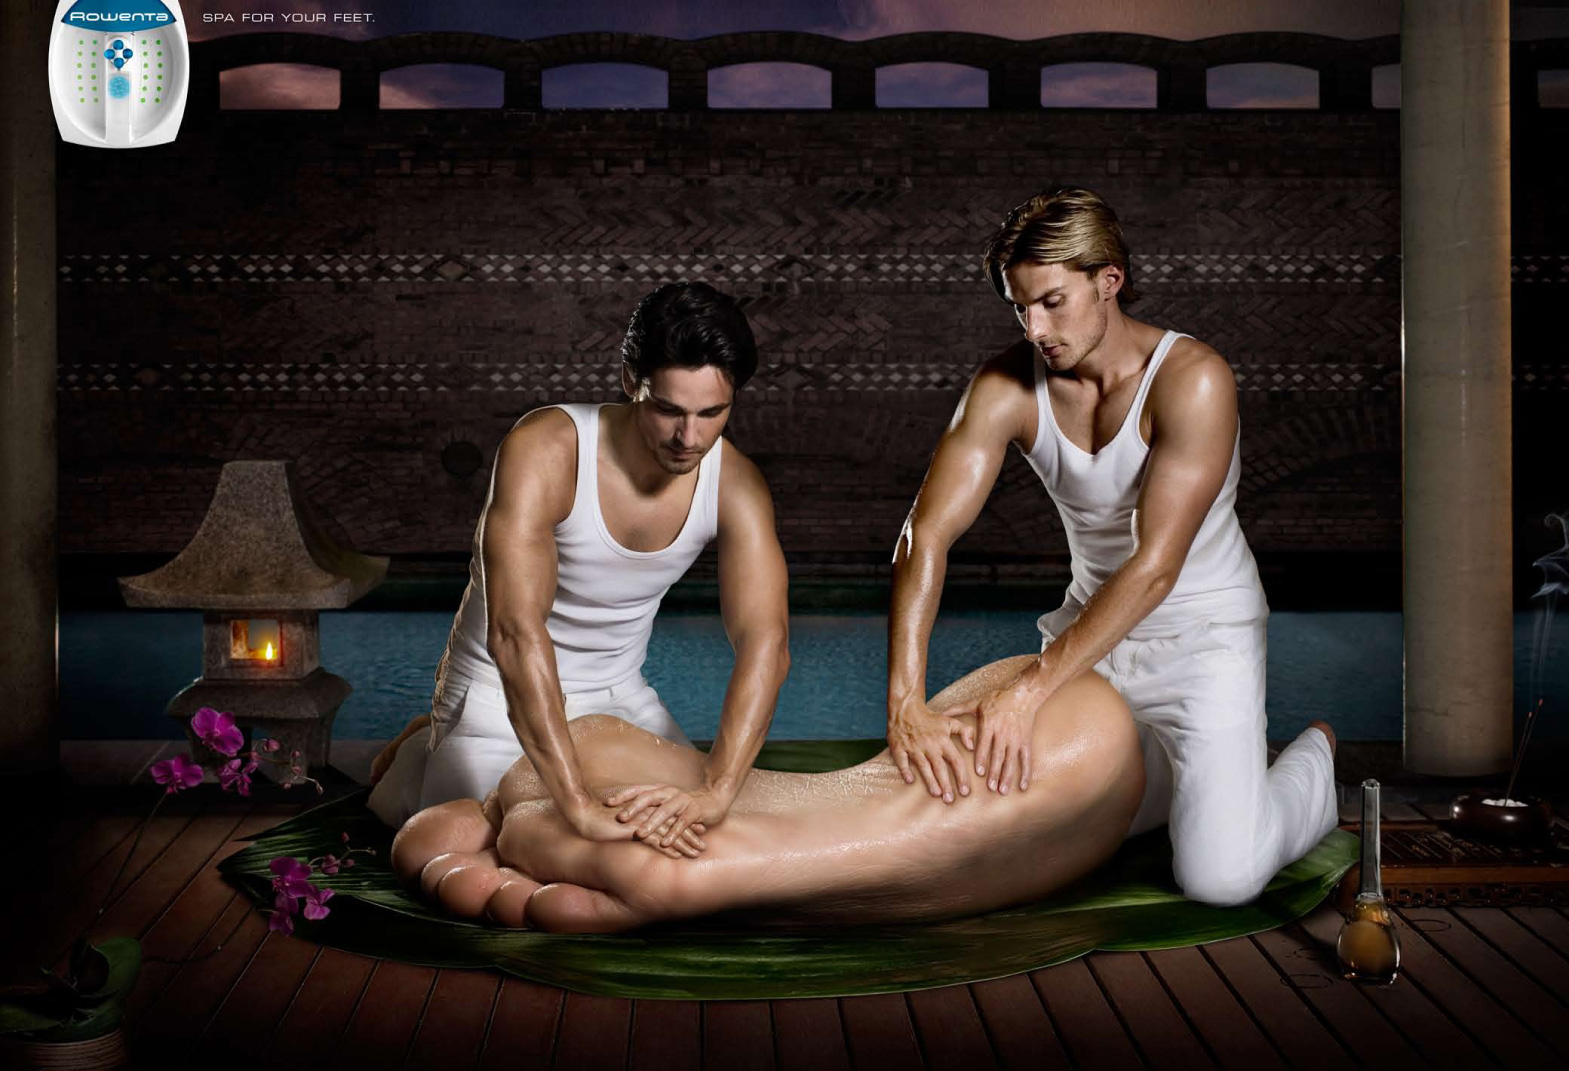 Rowenta Print Advert By Publicis: Massage | Ads of the World™